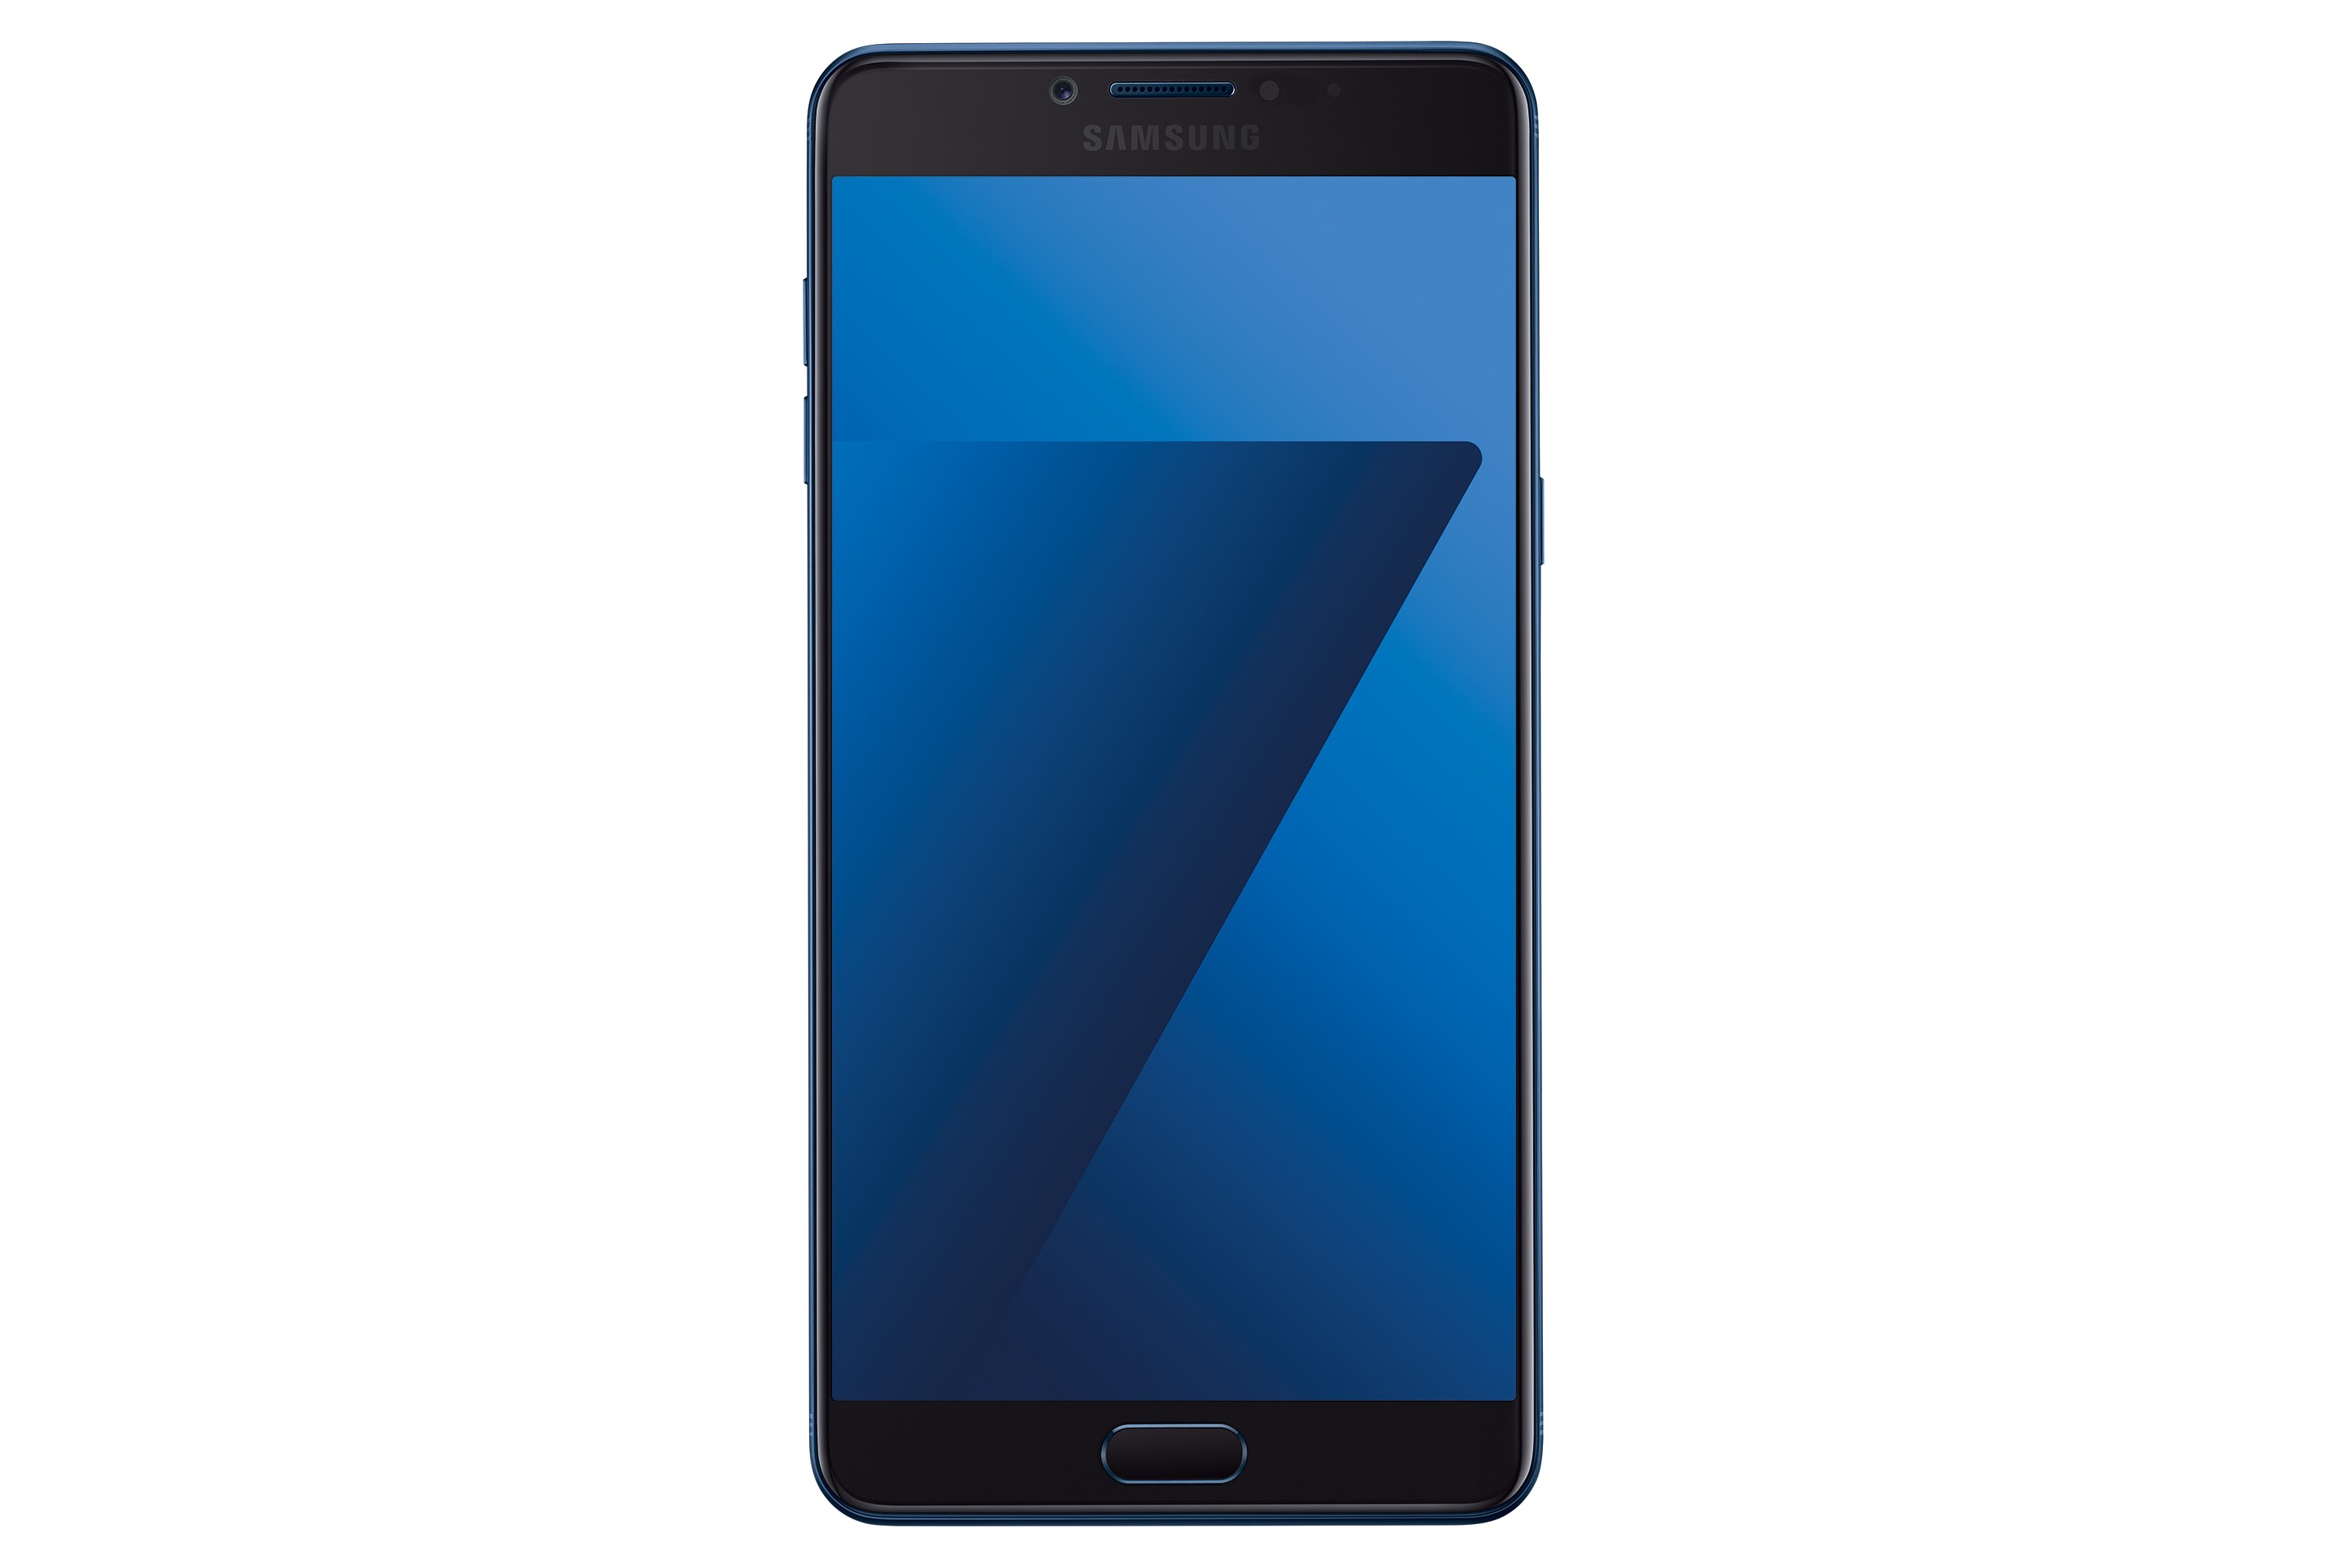 Samsung Galaxy On5 And On7 Stock Wallpapers Download: Price, Specs And Features